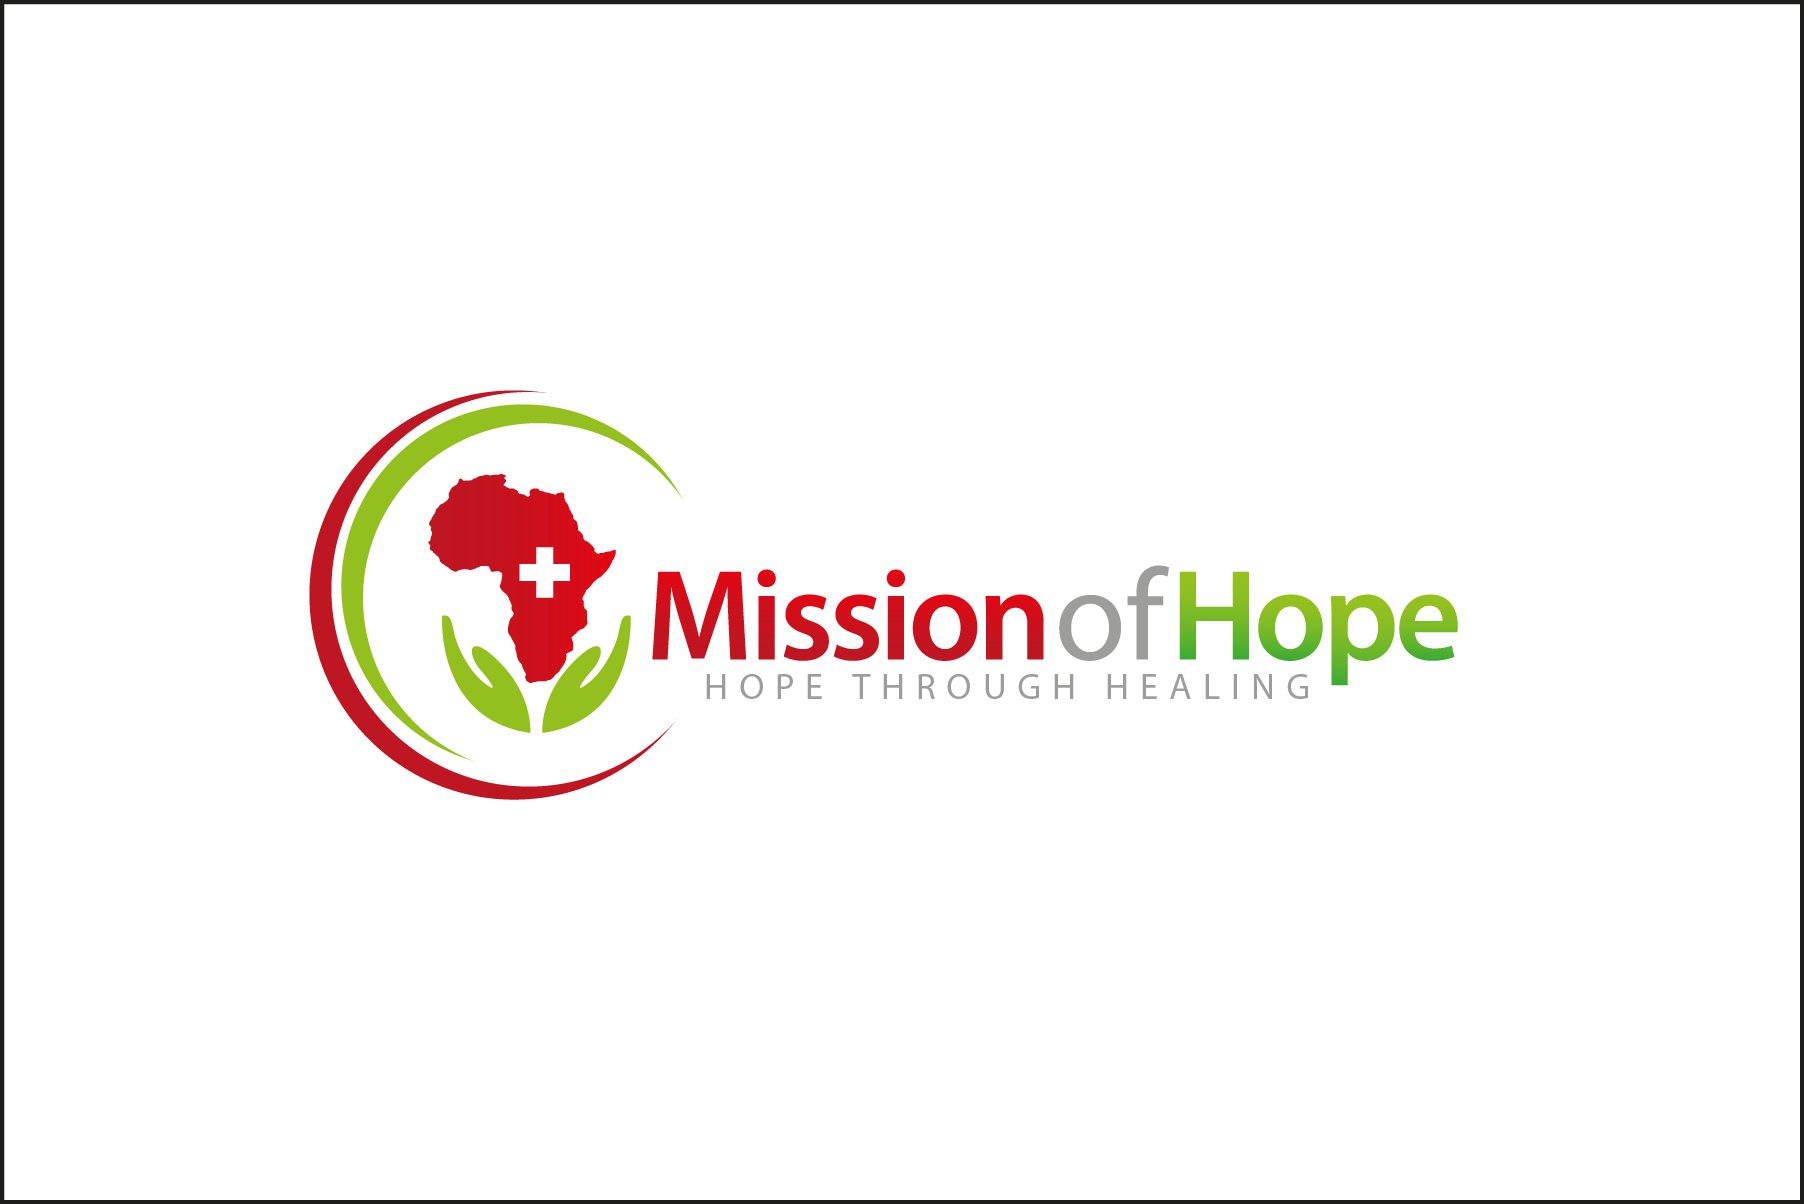 Create an inspiring, uplifiting illustration that relays hope and healing for Mission of Hope